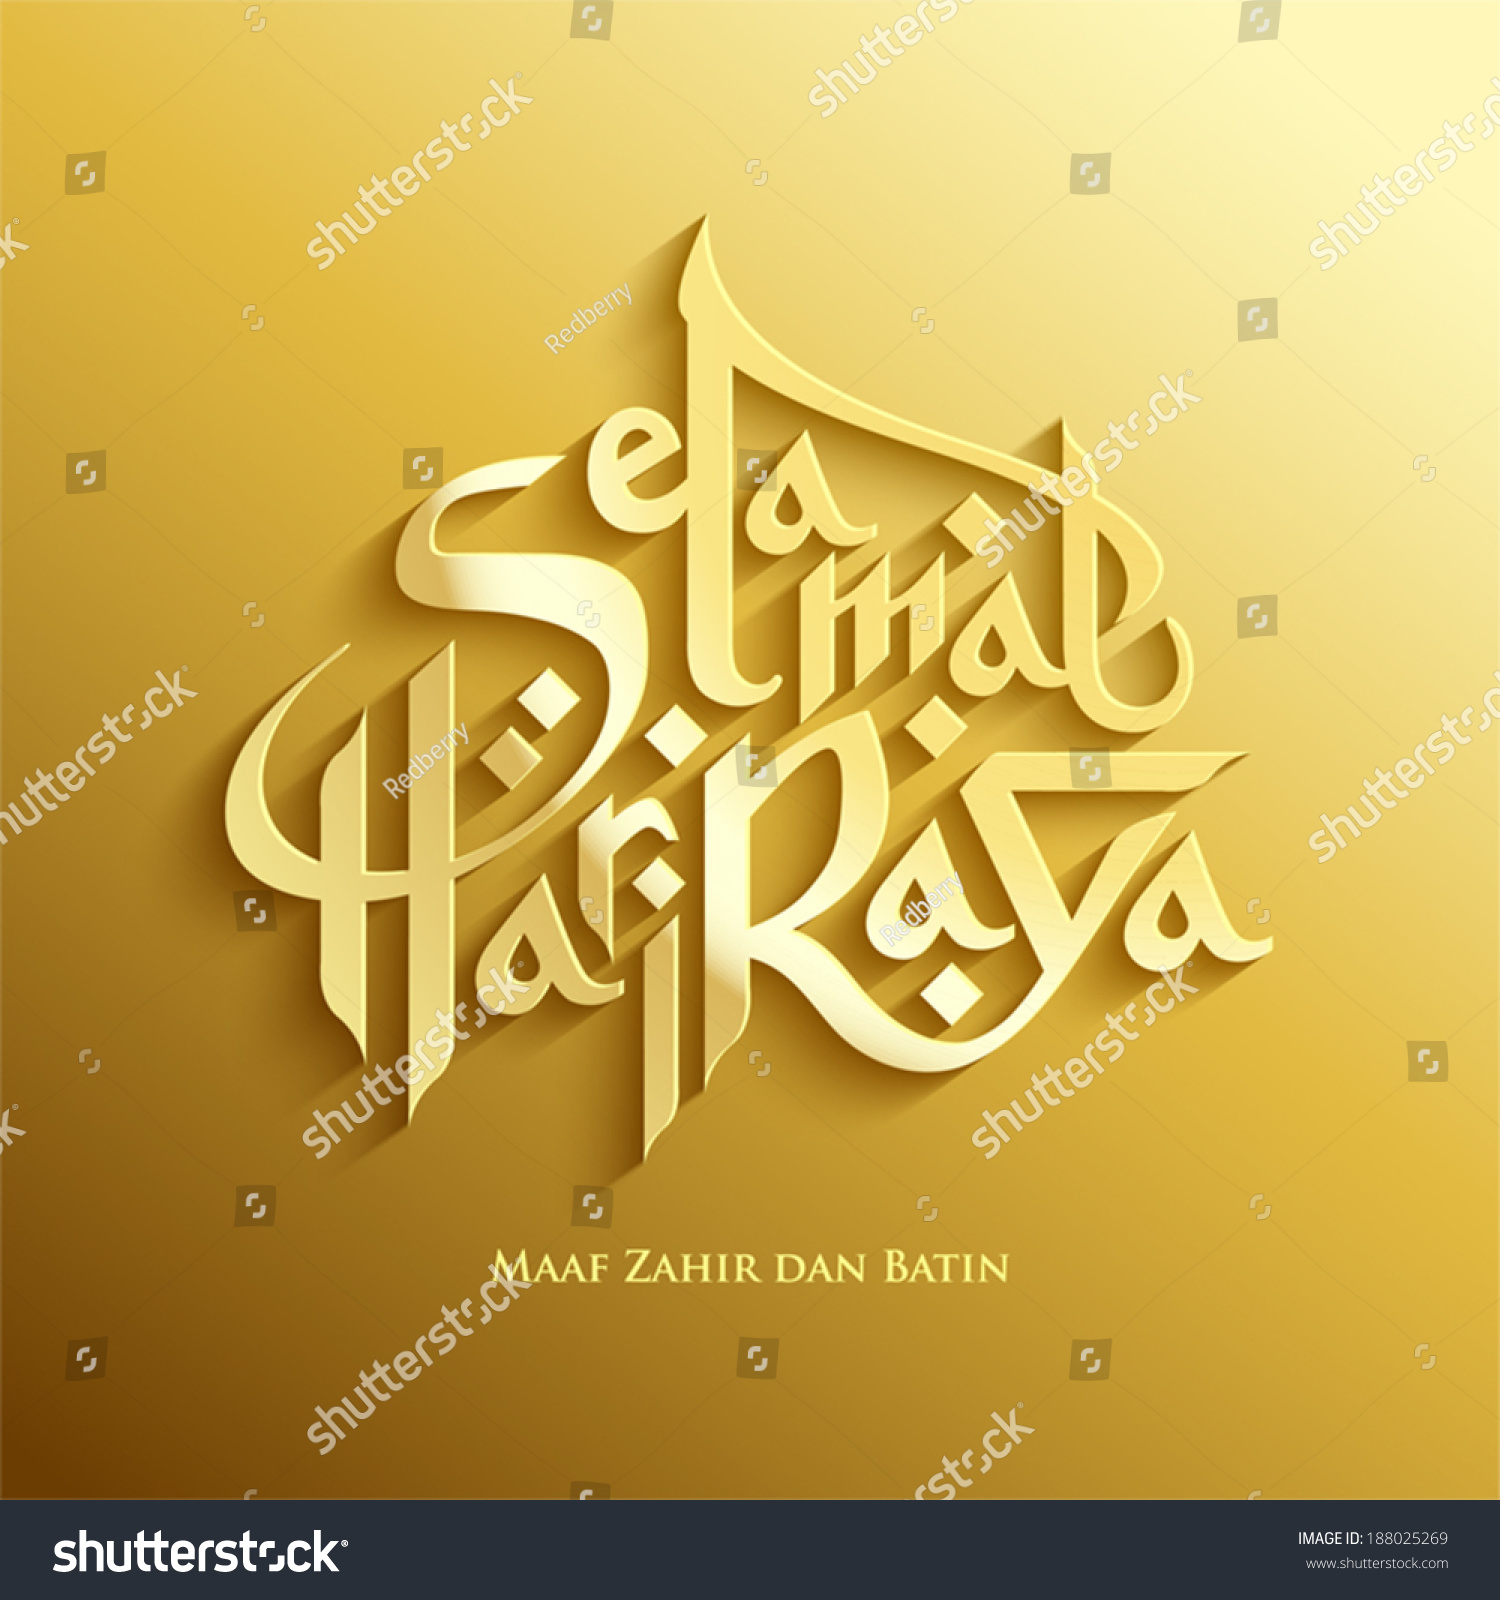 Download Idul Eid Al-Fitr Feast - stock-vector-aidilfitri-graphic-design-selamat-hari-raya-aidilfitri-literally-means-feast-of-eid-al-fitr-188025269  Snapshot_61850 .jpg